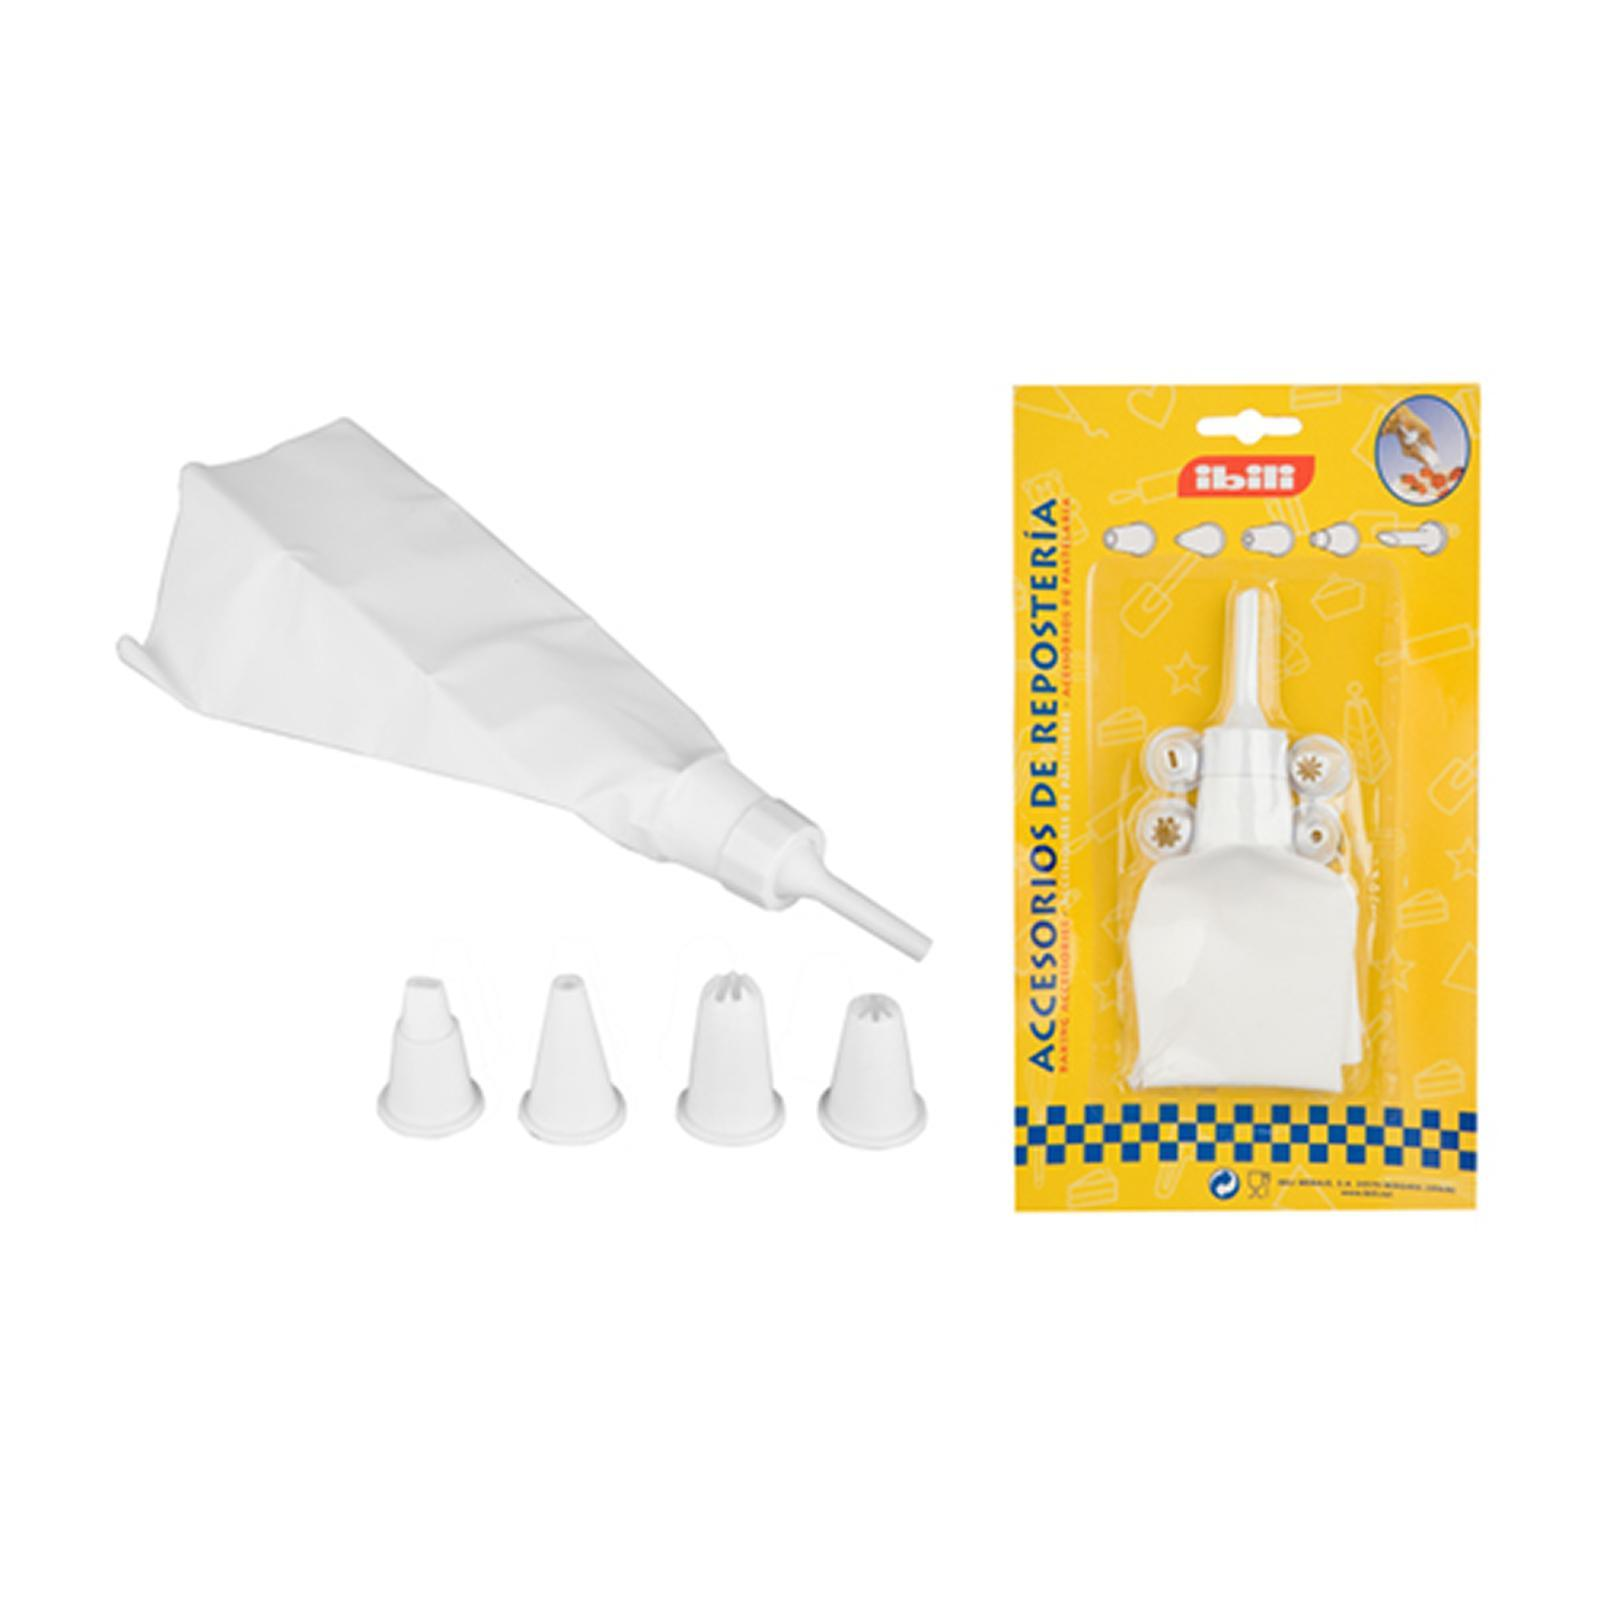 Ibili Pastry Tube Set With 5 Nozzles And Icing Bag - By ToTT